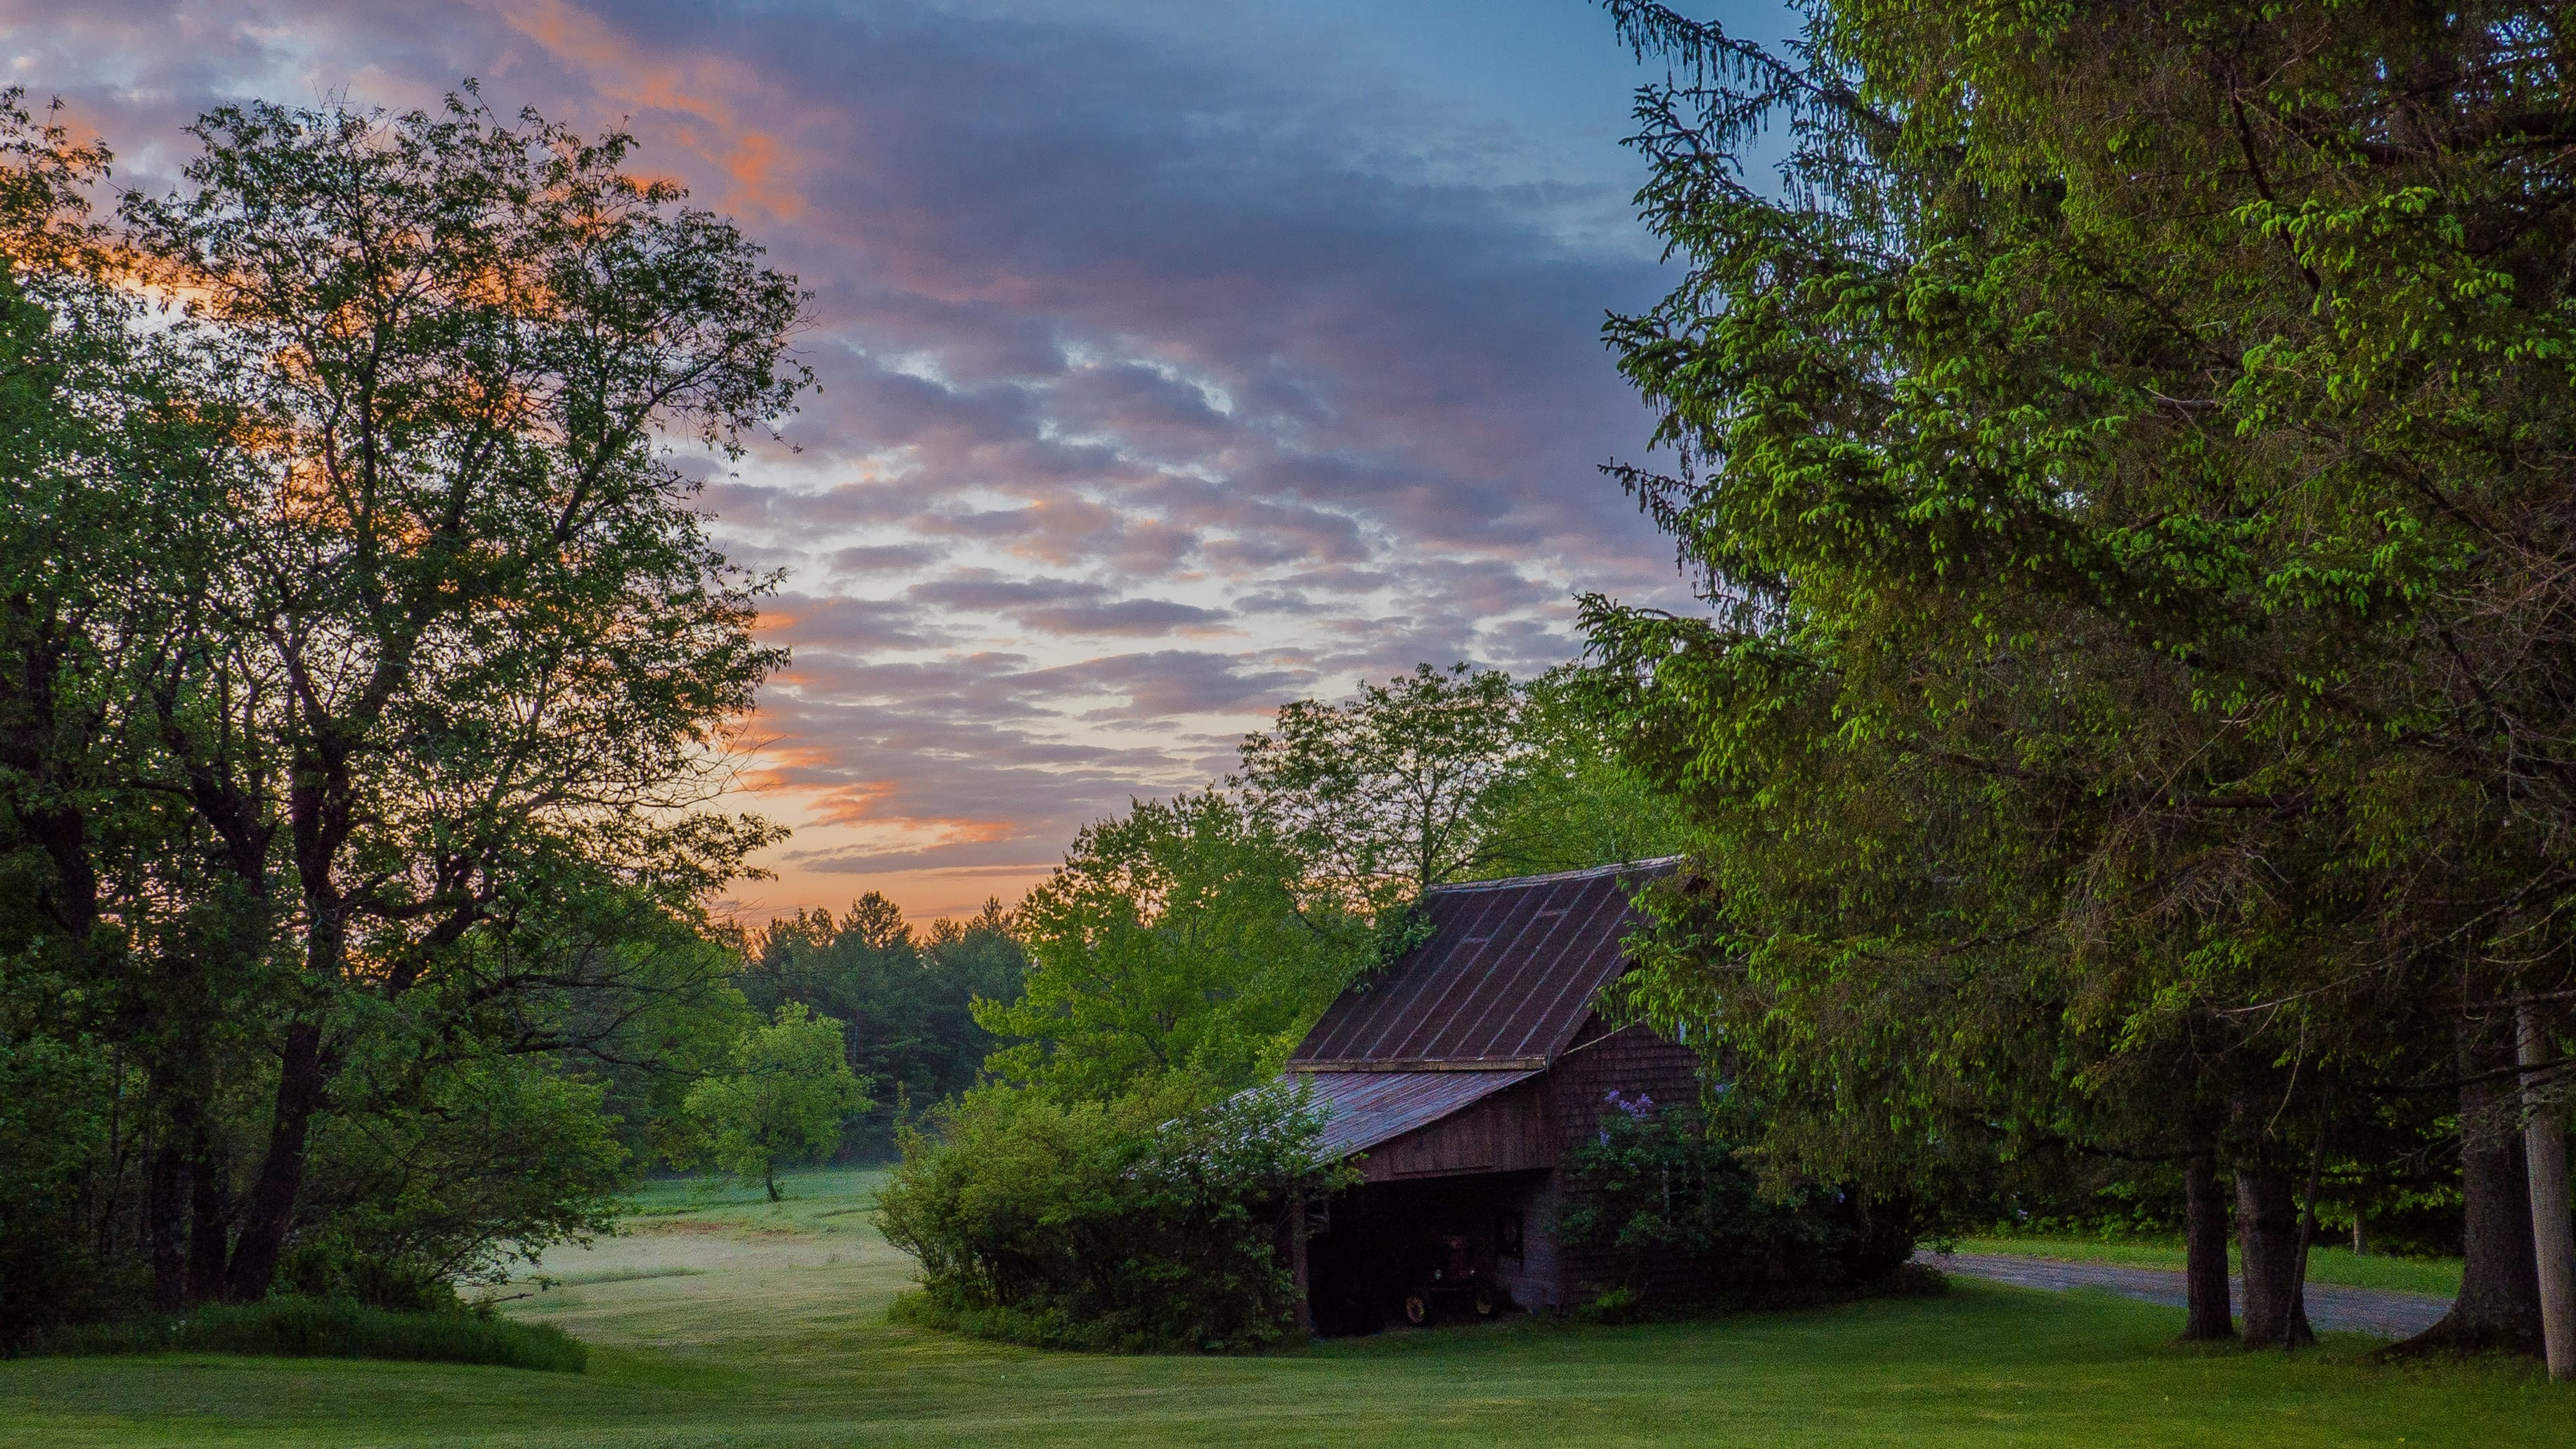 Red house surrounded by trees at dawn; image by Paul Varnum, via Unsplash.com.